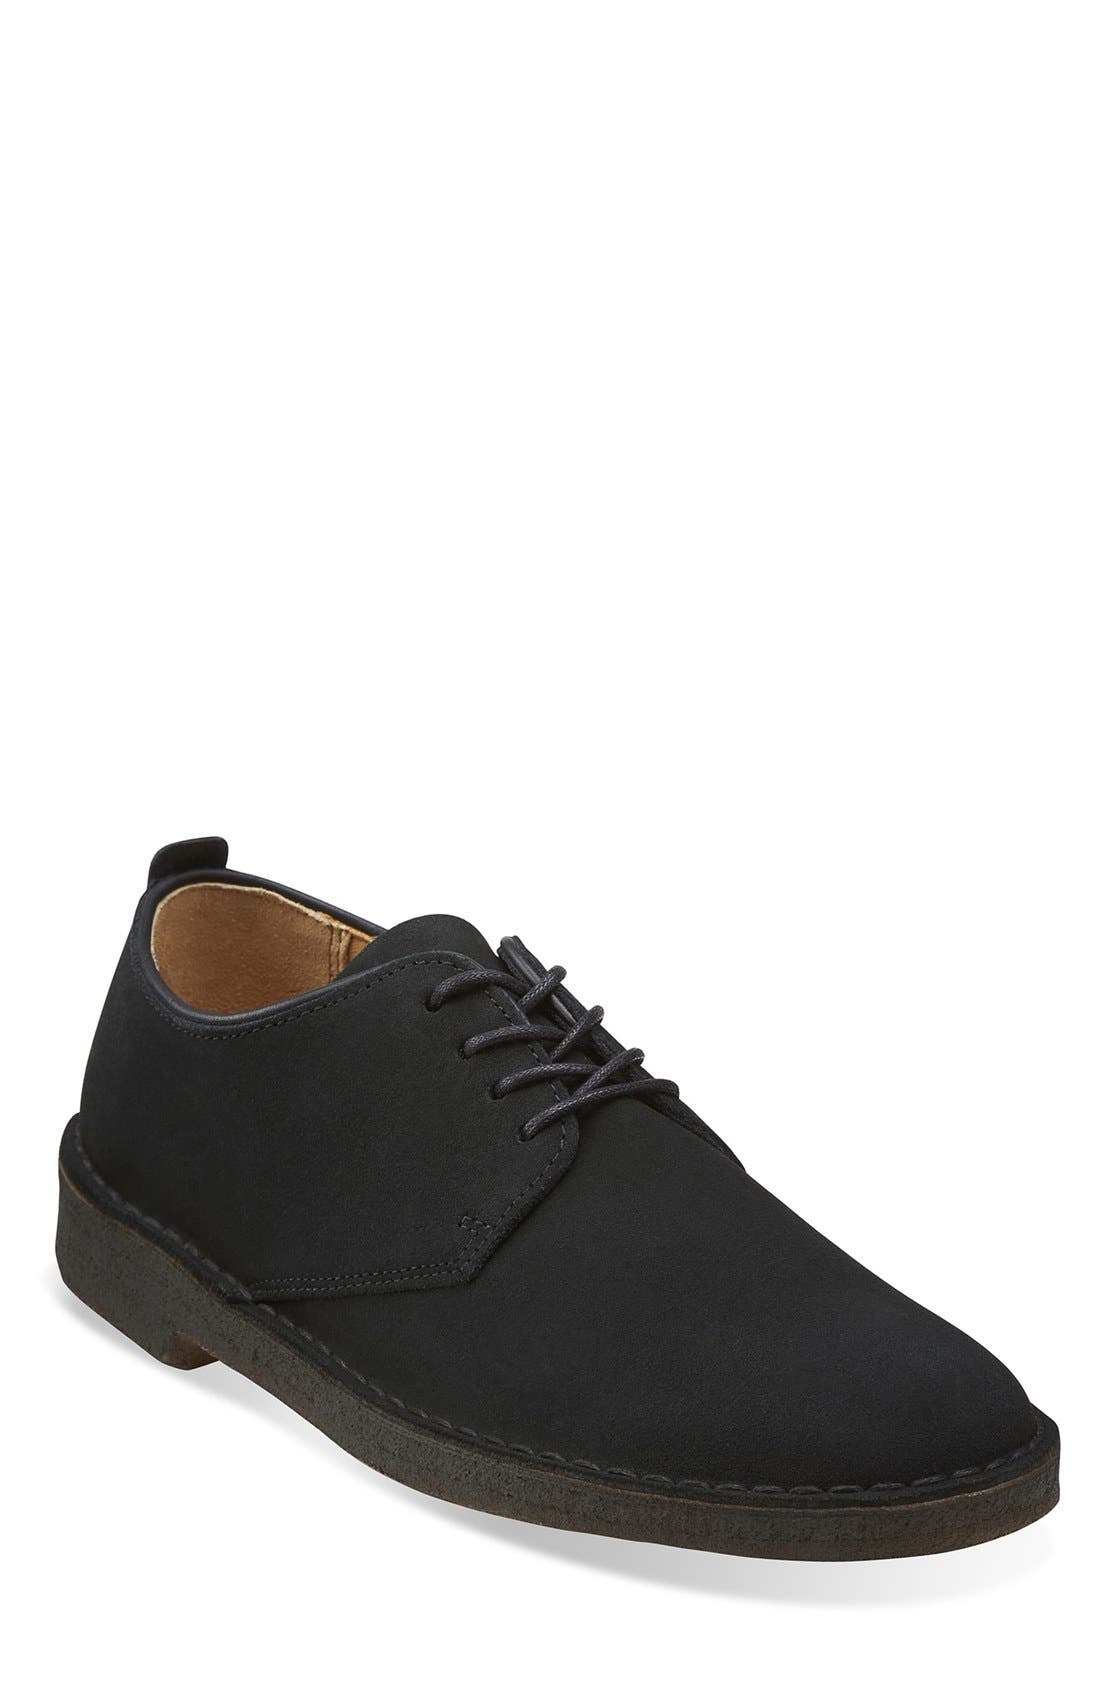 'Desert London' Plain Toe Derby,                             Main thumbnail 1, color,                             BLACK SUEDE